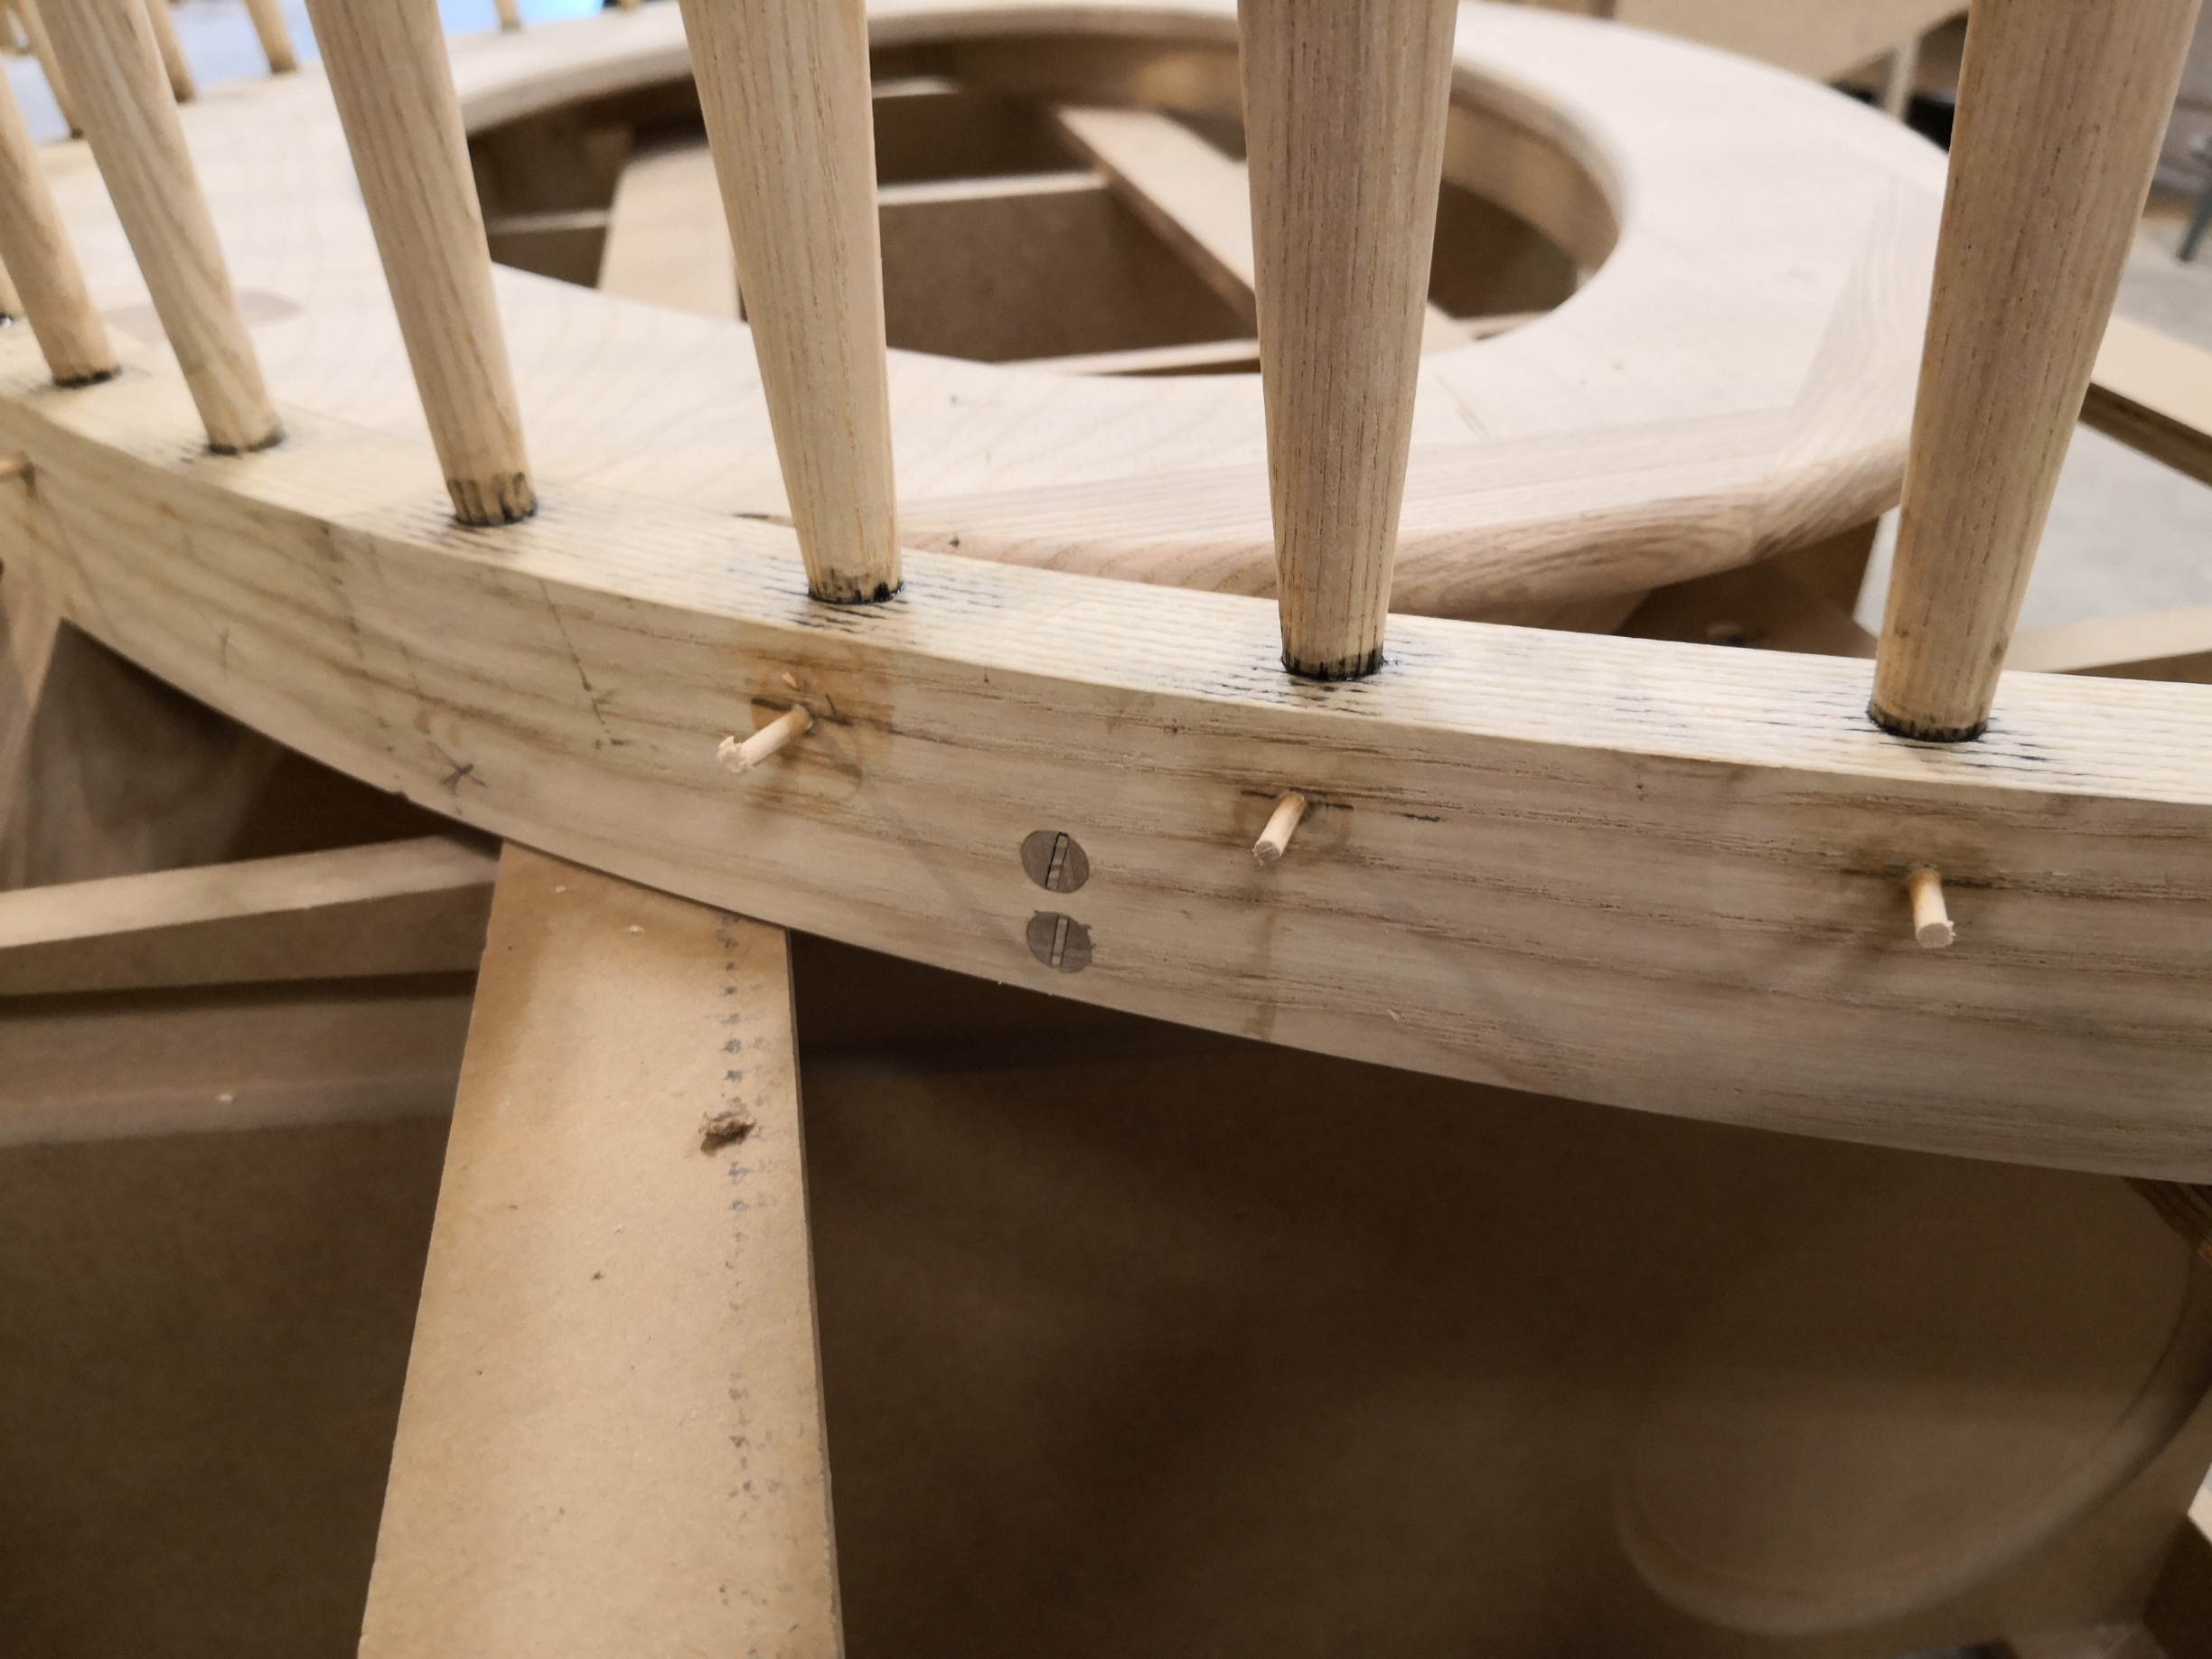 Pinning bottom of the all spindles after glued with epoxy